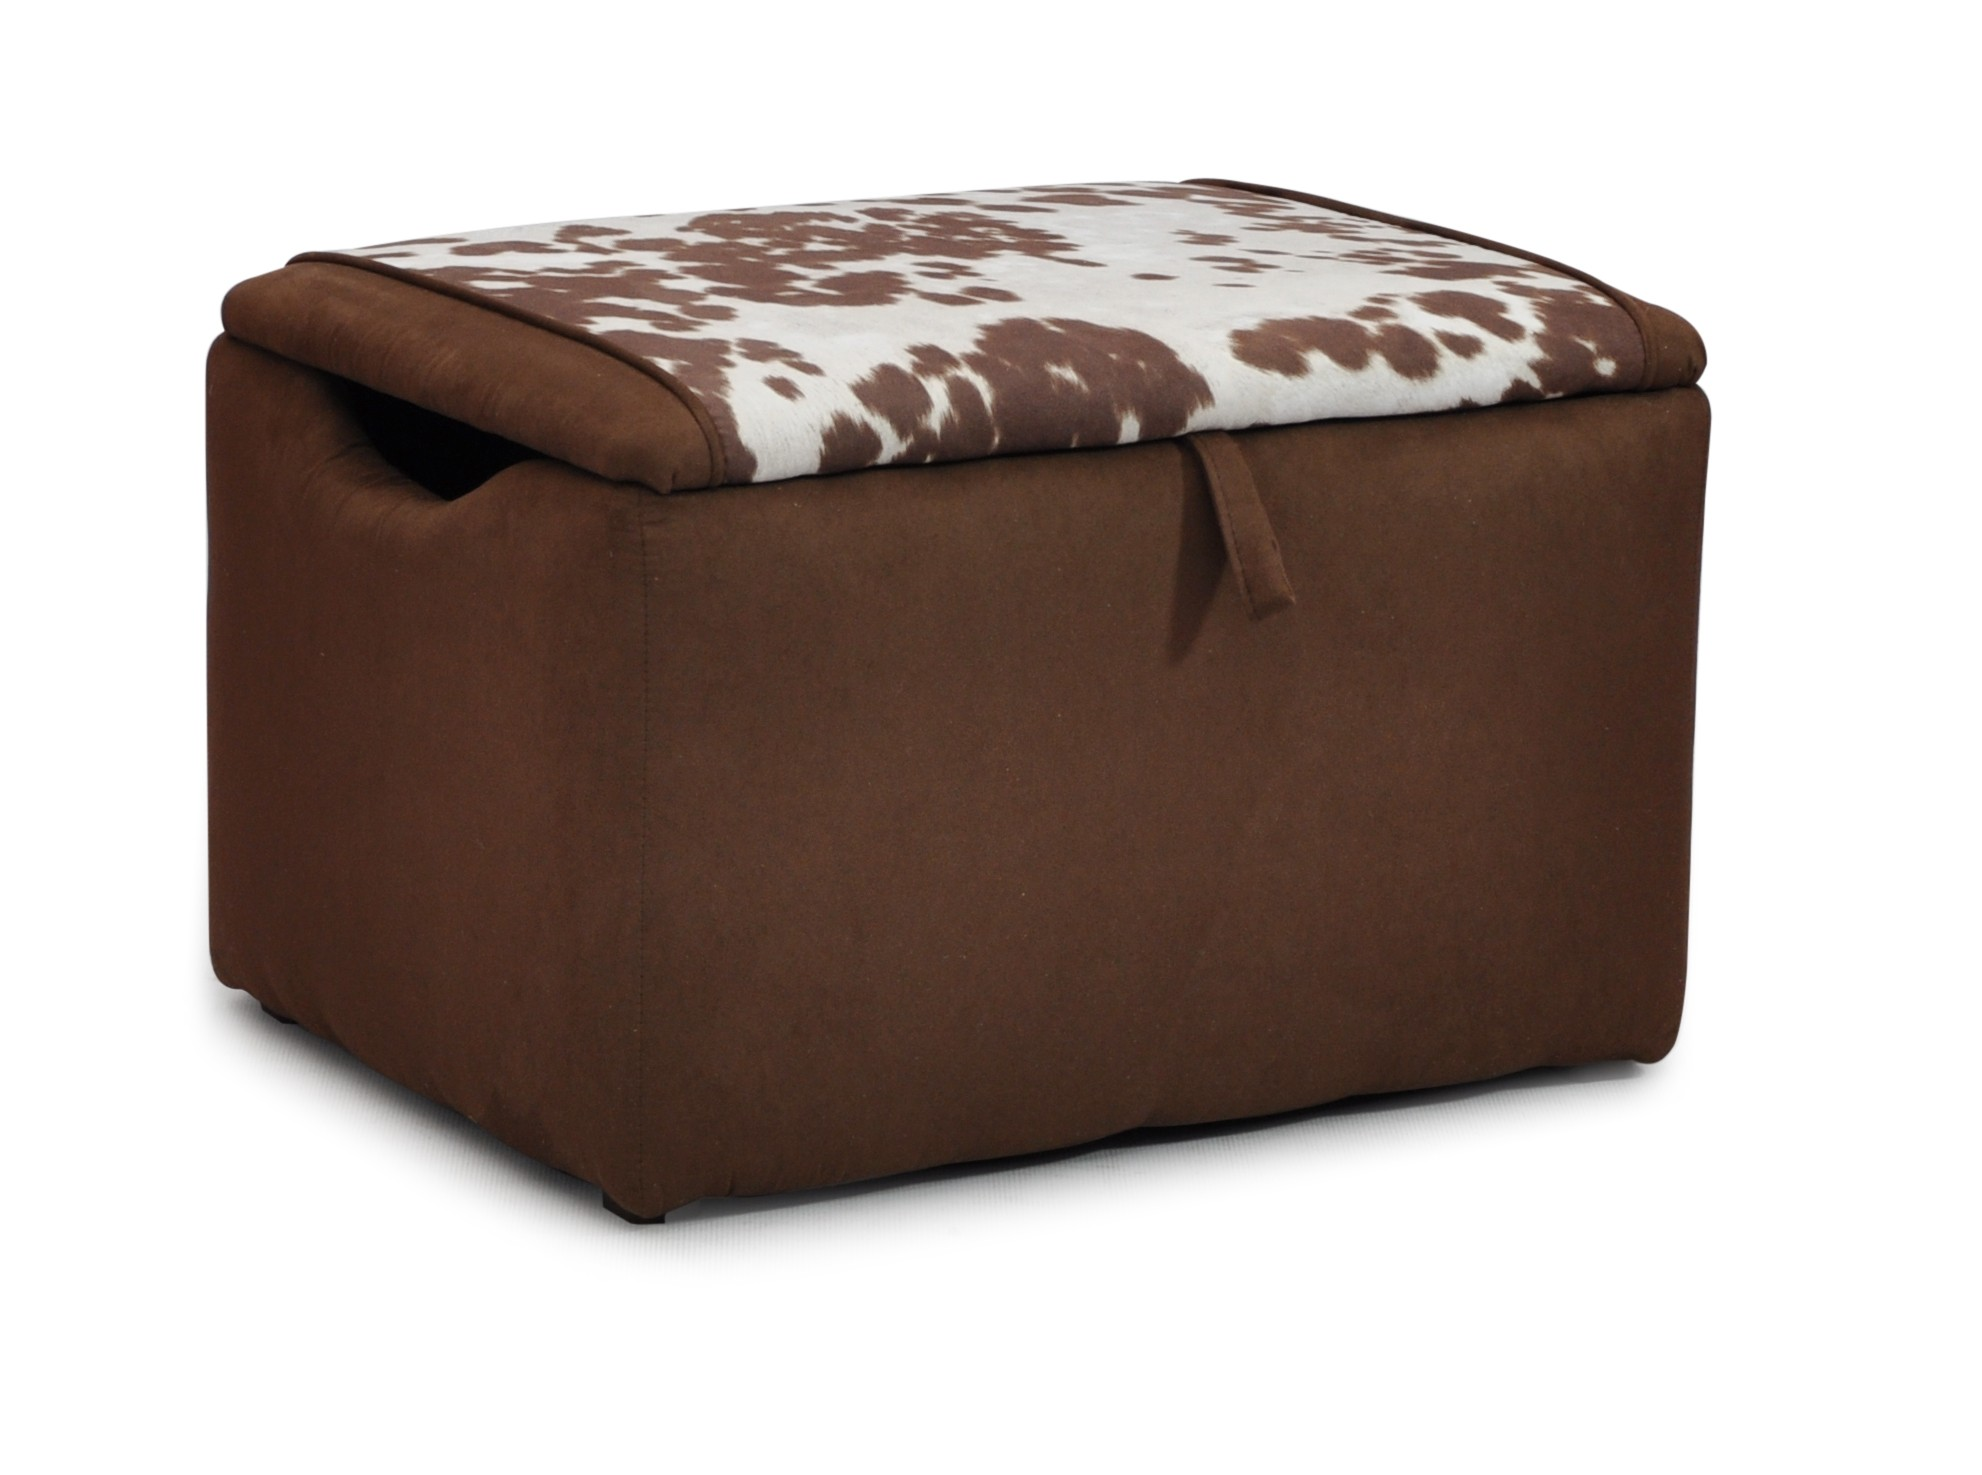 Mixy Longhorn Brown Chocolate Suede Box